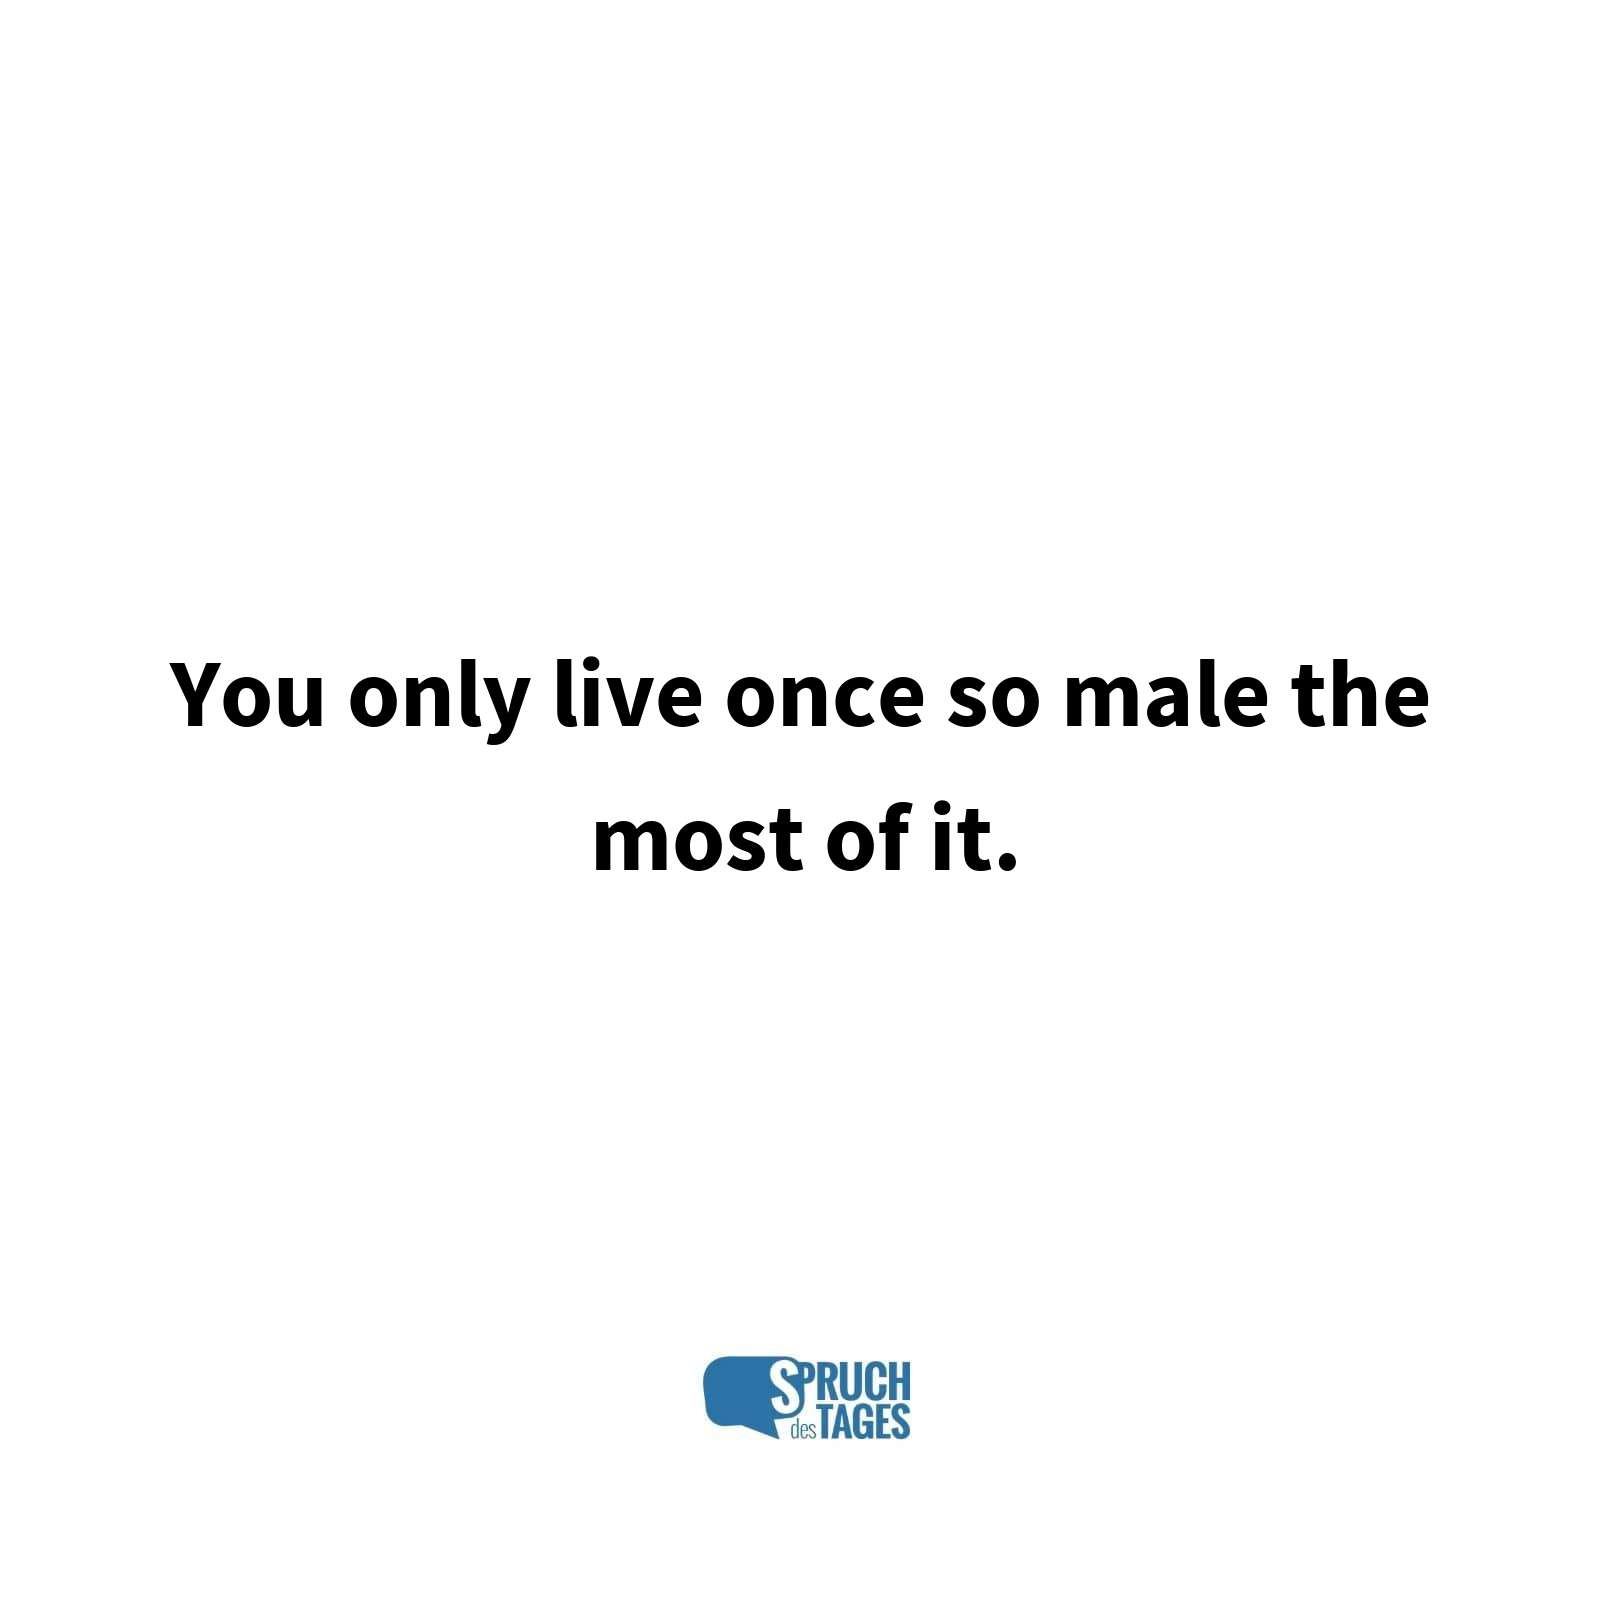 You only live once so male the most of it.